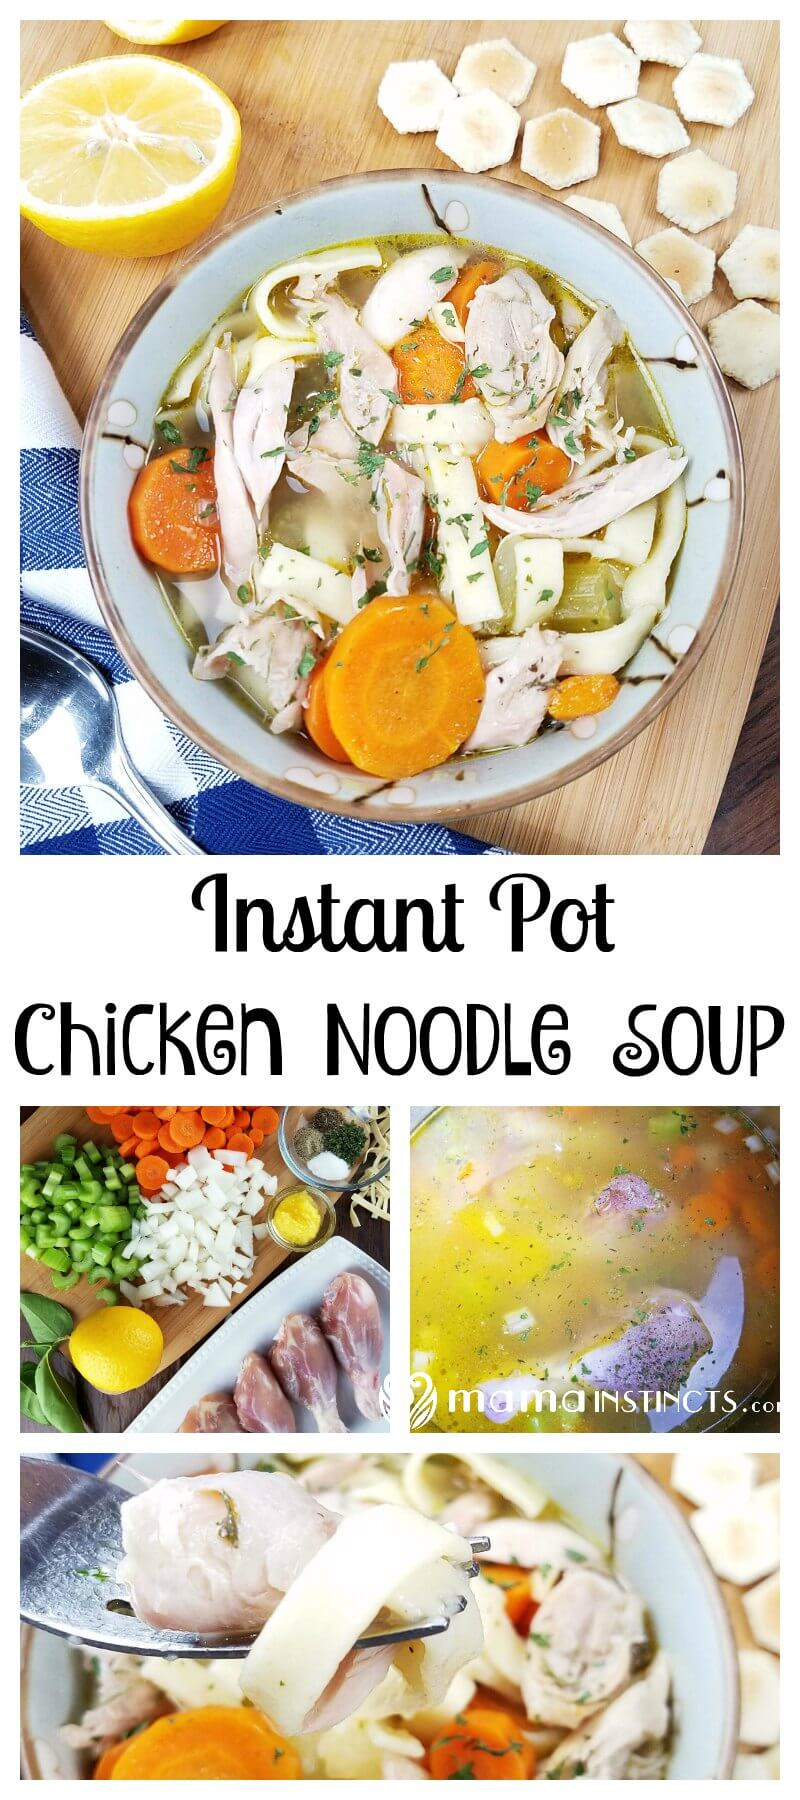 Try this delicious chicken noodle soup in your instant pot. It takes less than 10 minutes to cook and it's so tasty. Perfect for those days when you need a quick meal or you're feeling a little sick.